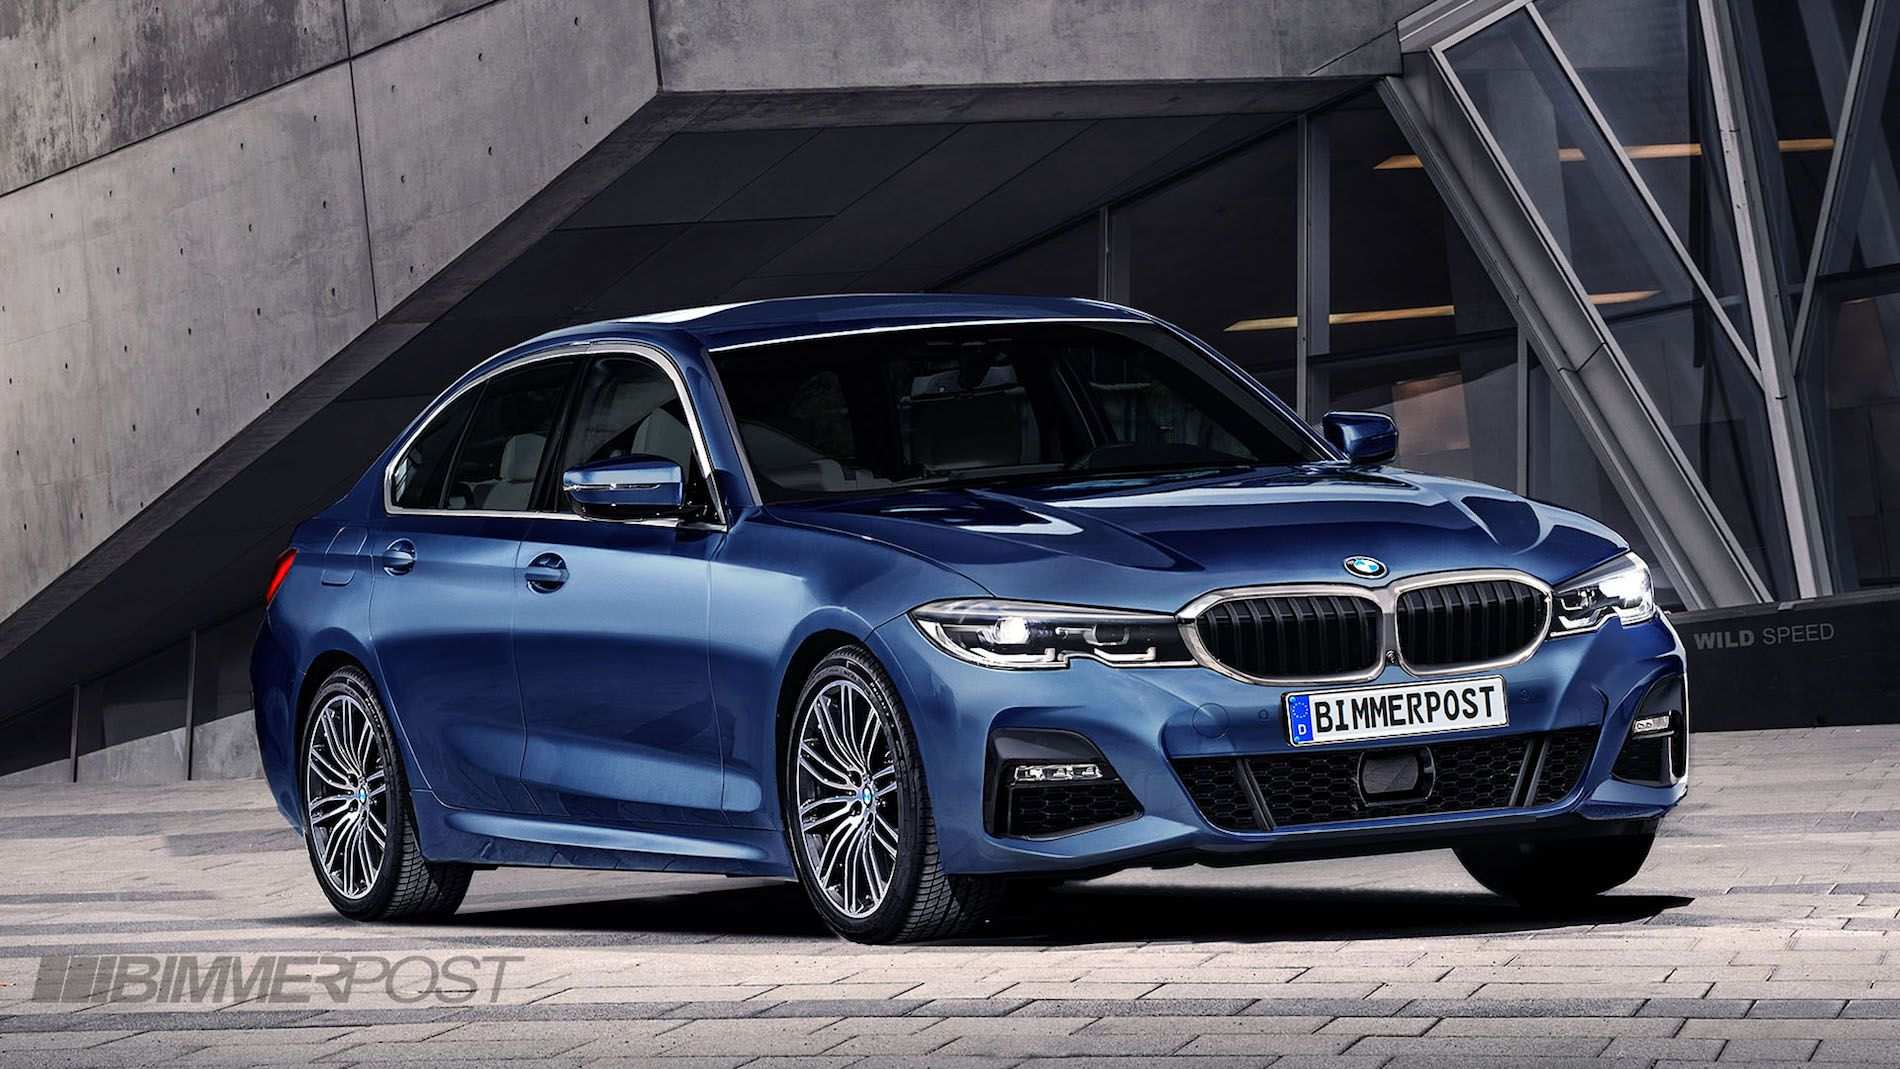 82 New Spy Shots Bmw 3 Series Ratings by Spy Shots Bmw 3 Series